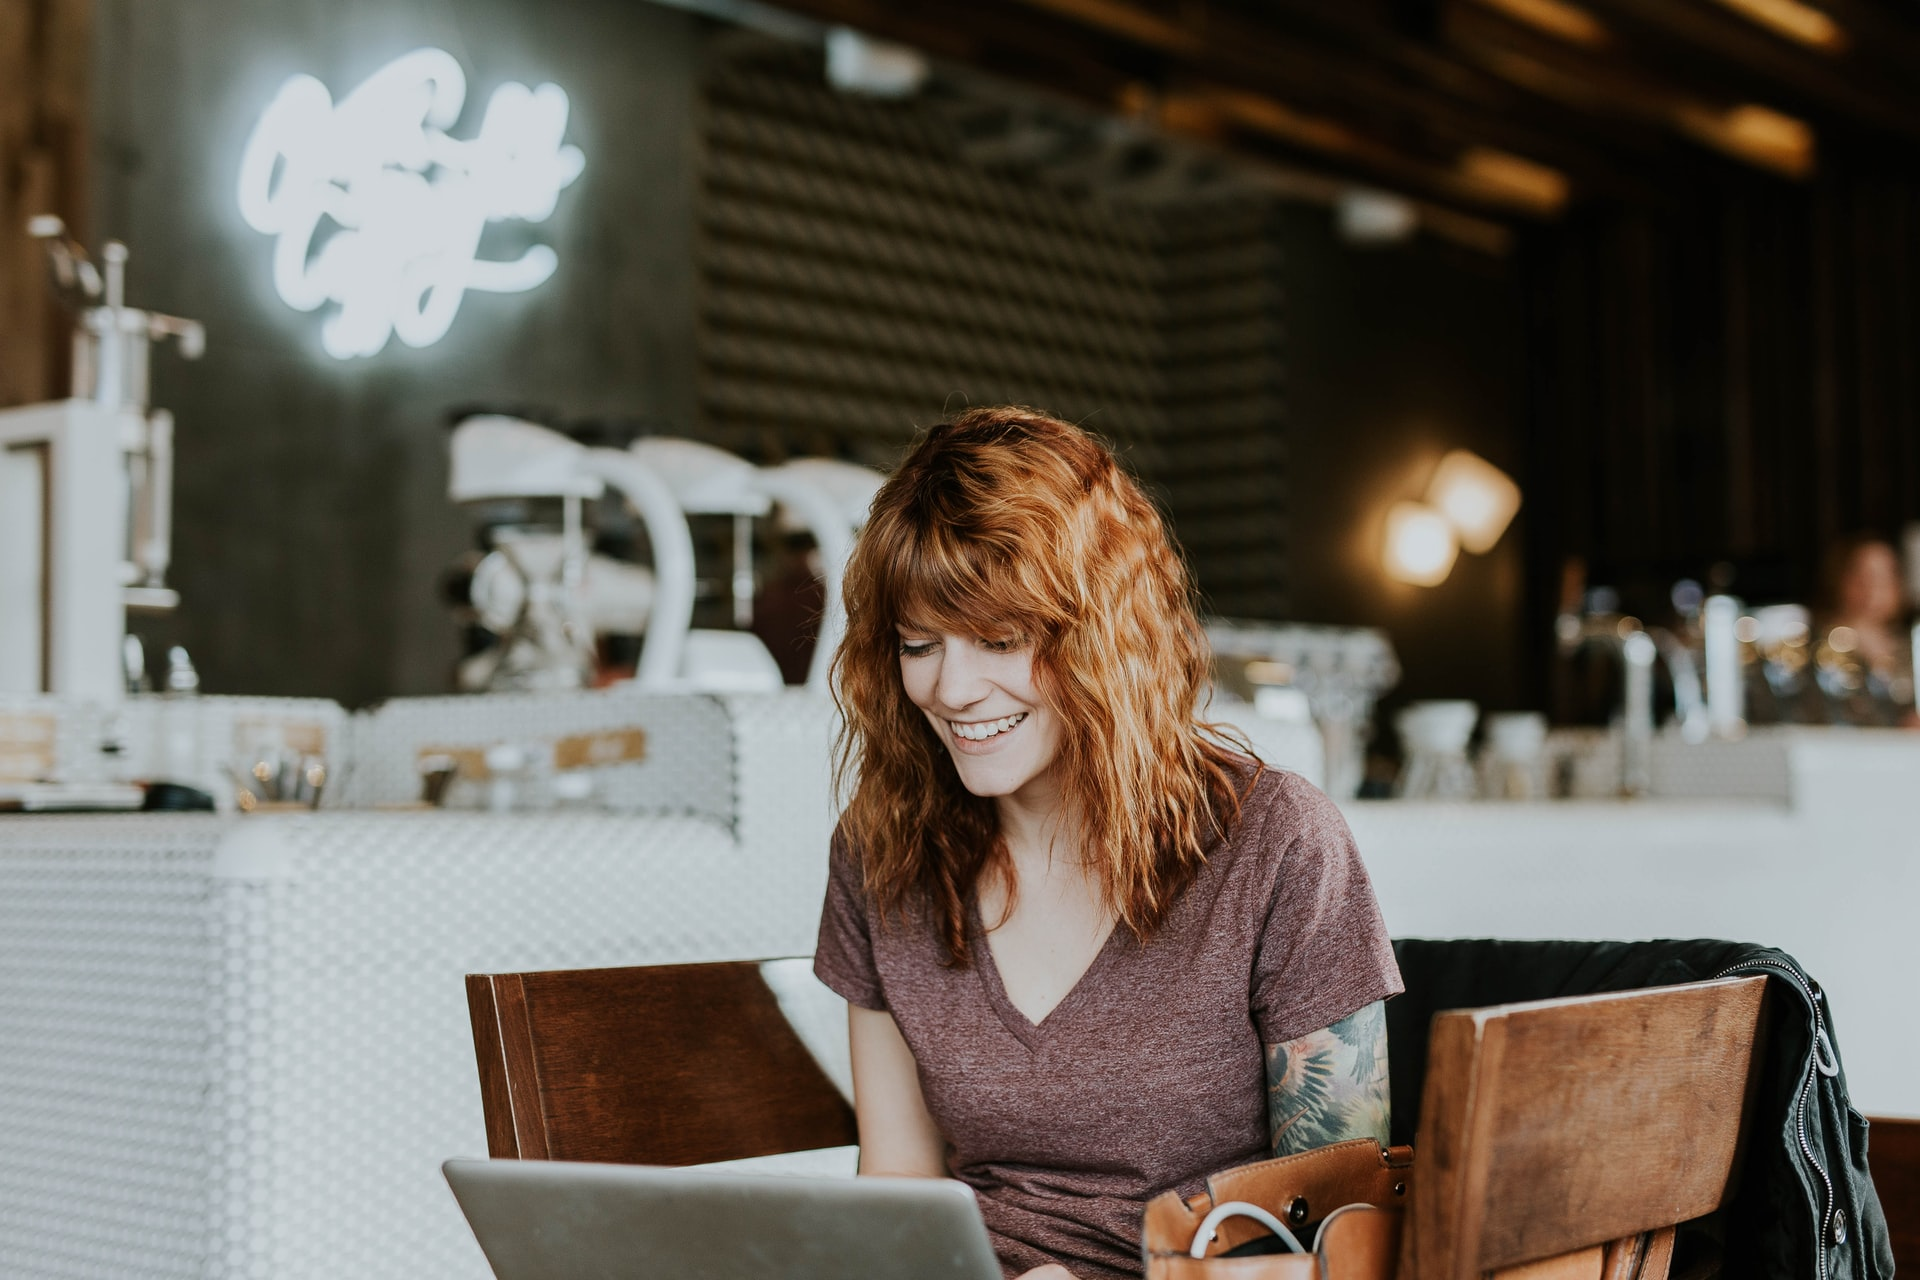 How to Become an Online English Teacher with ESL/TEFL Certification